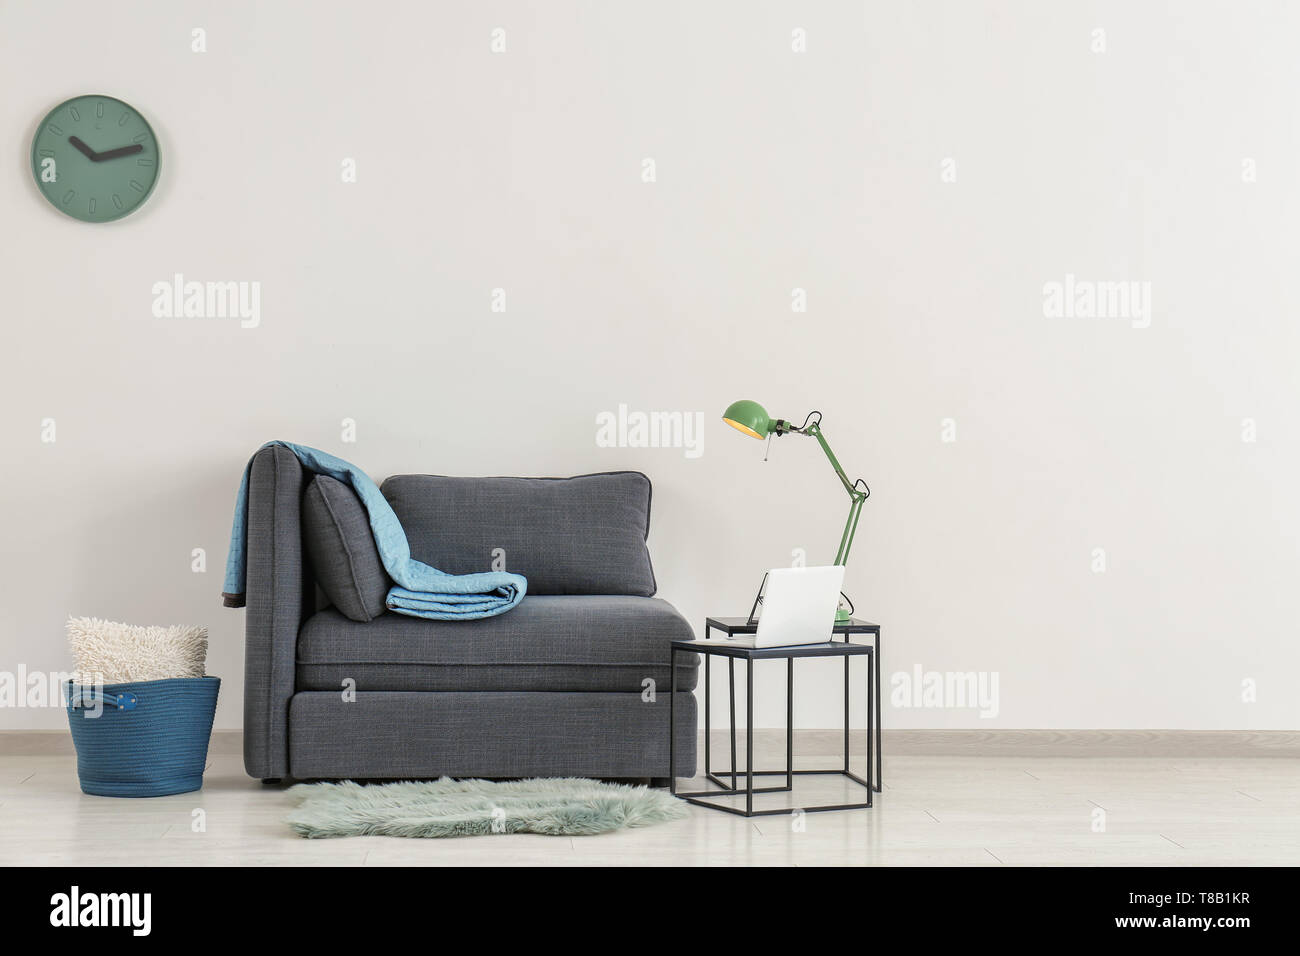 Seats And Sofa Pancho Bank Interior Tables Stock Photos Interior Tables Stock Images Page